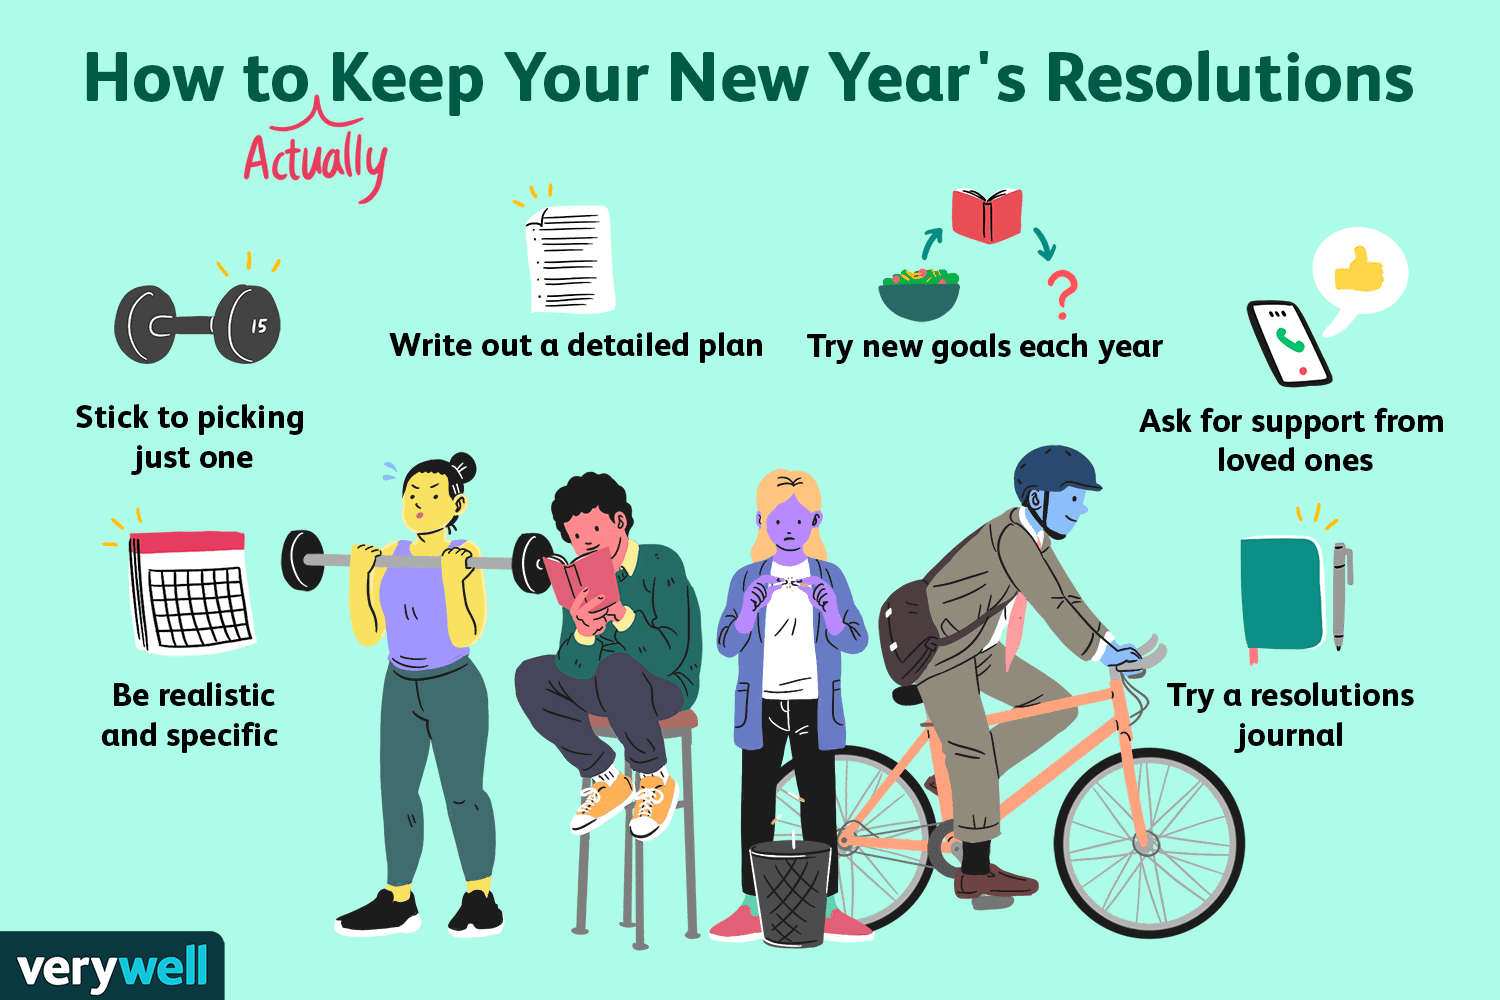 How to Stick to Your New Year's Resolutions This Year